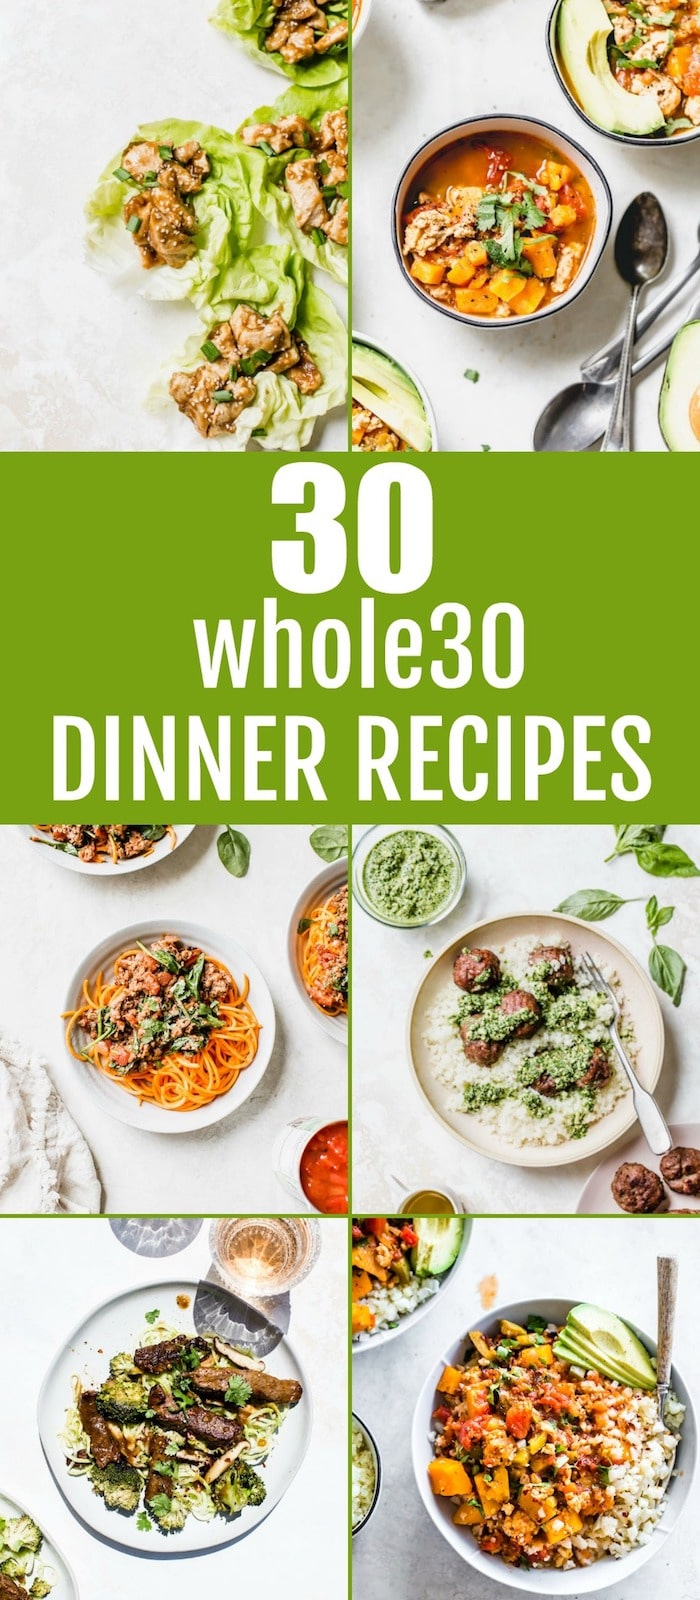 30 whole30 dinner recipes for you to enjoy throughout your whole30 journey!